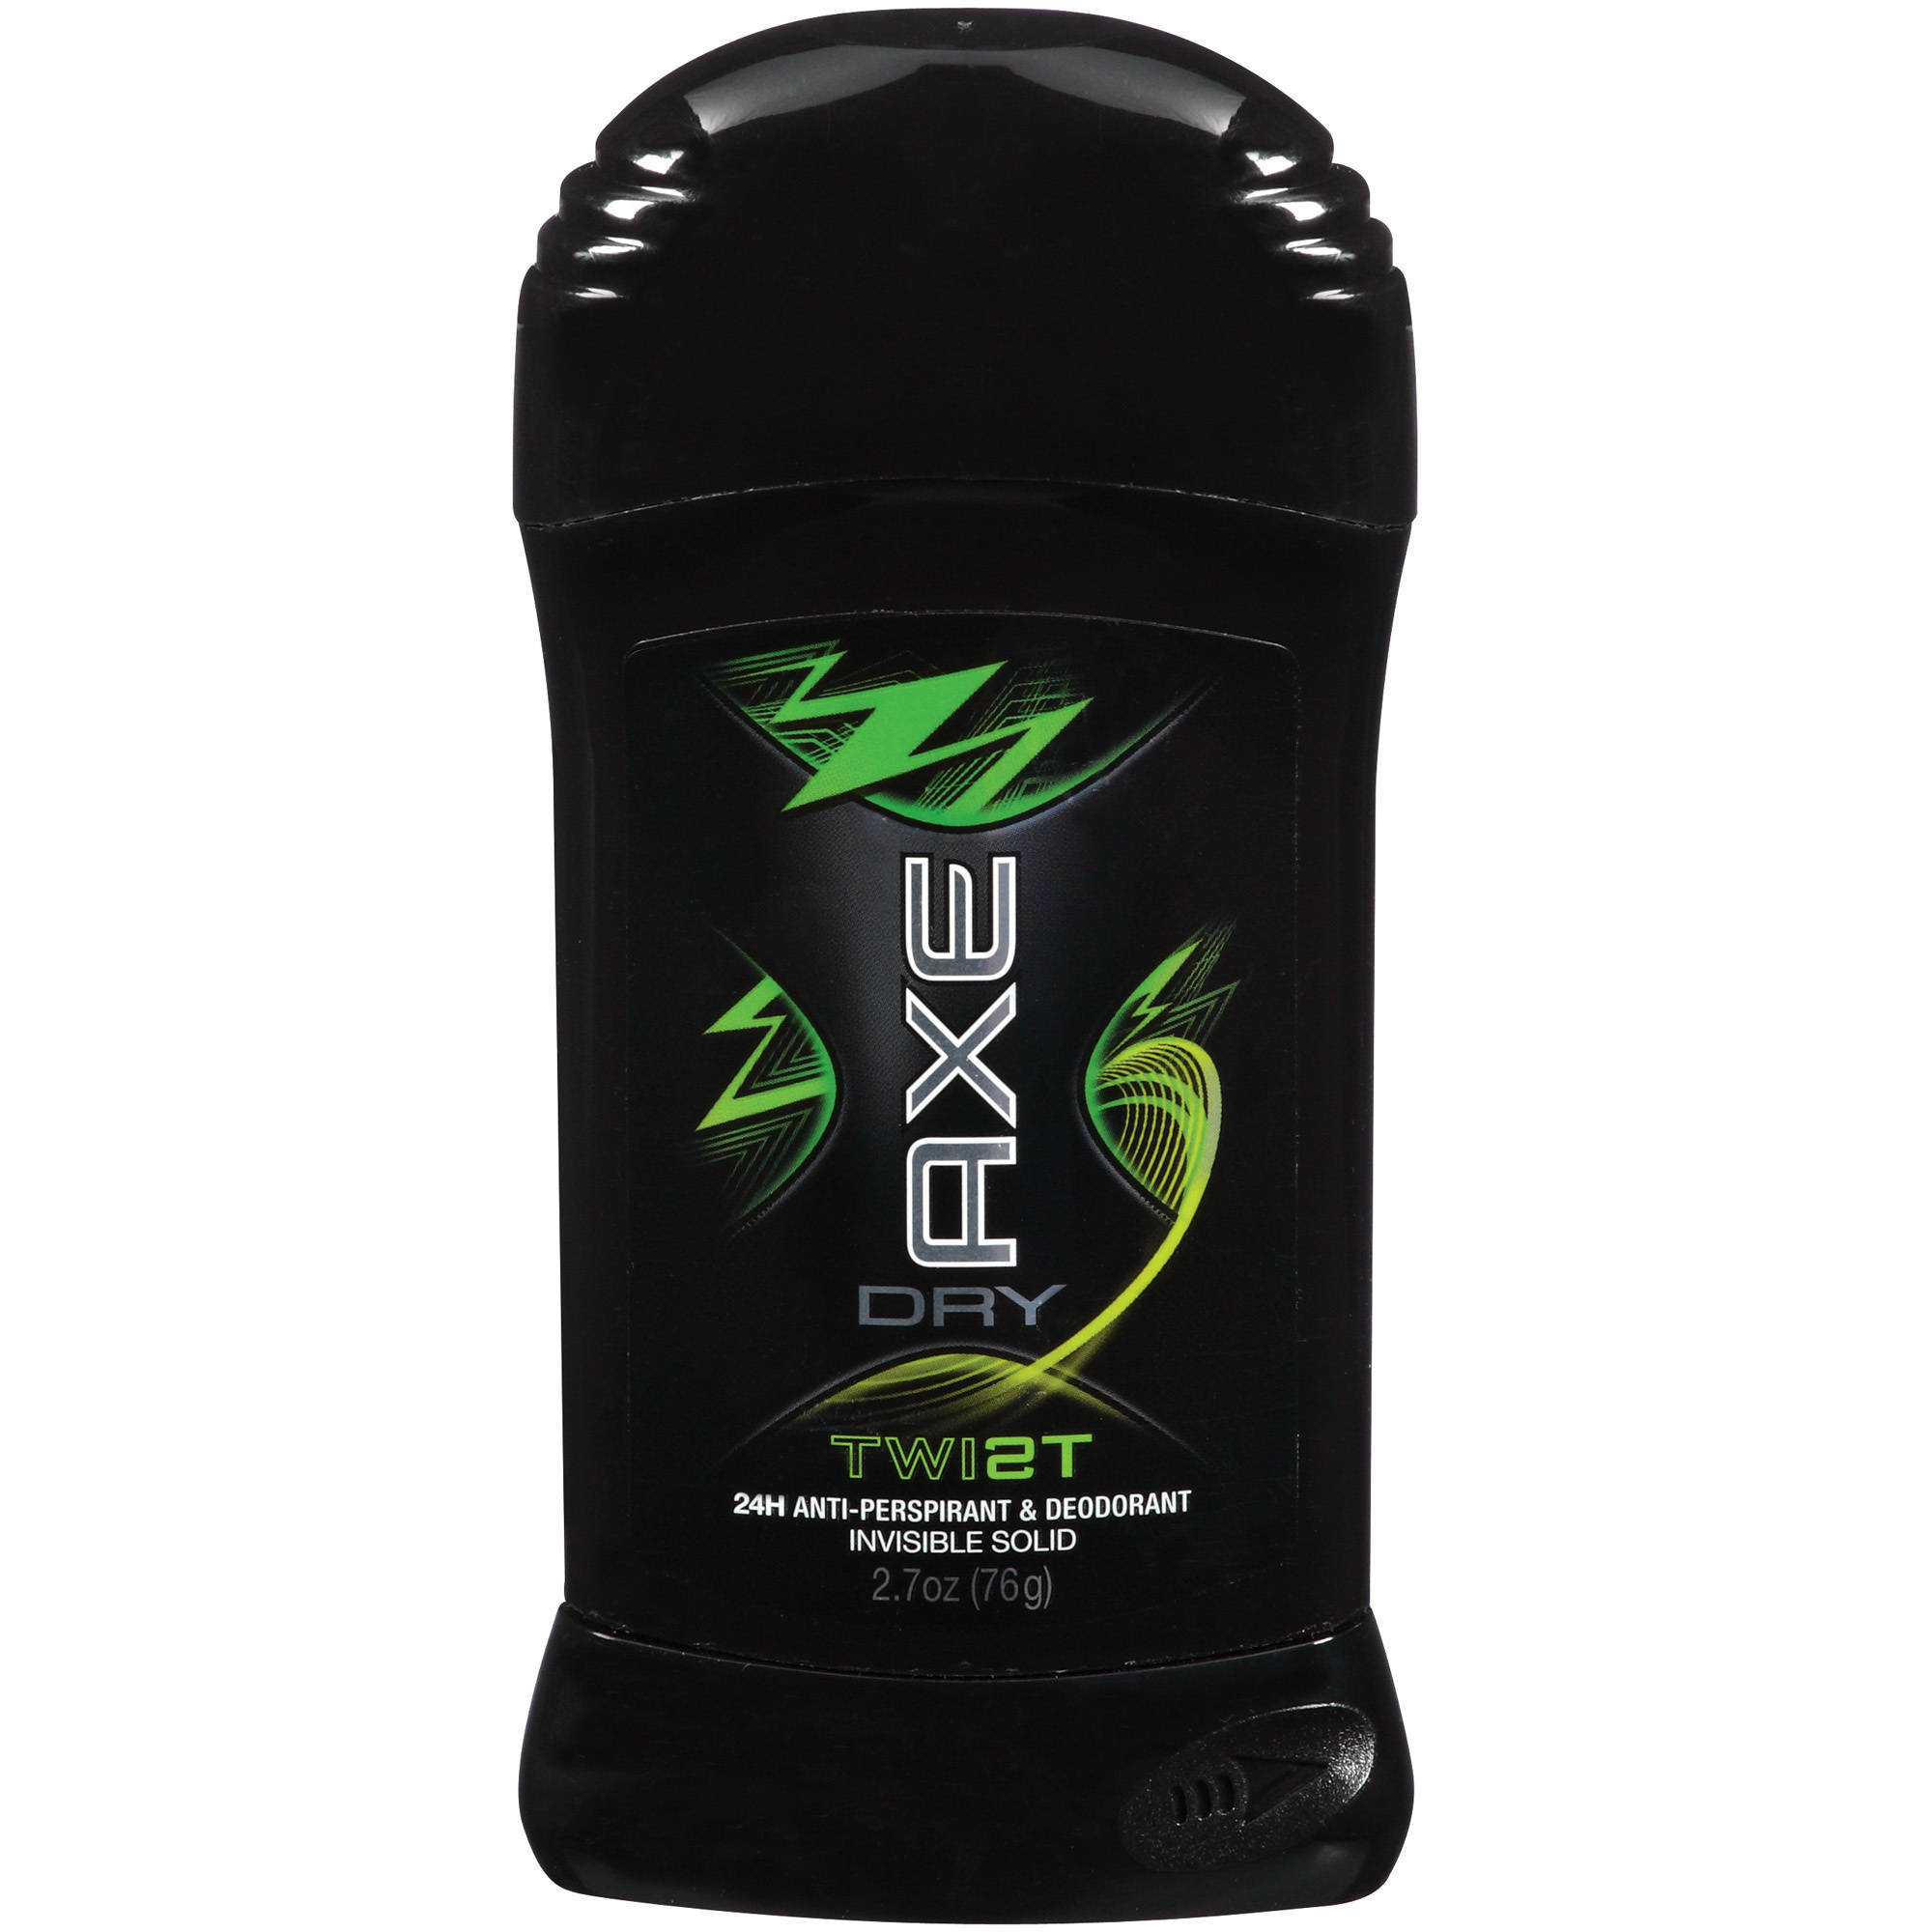 Axe Invisible Solid Twist 2.7oz